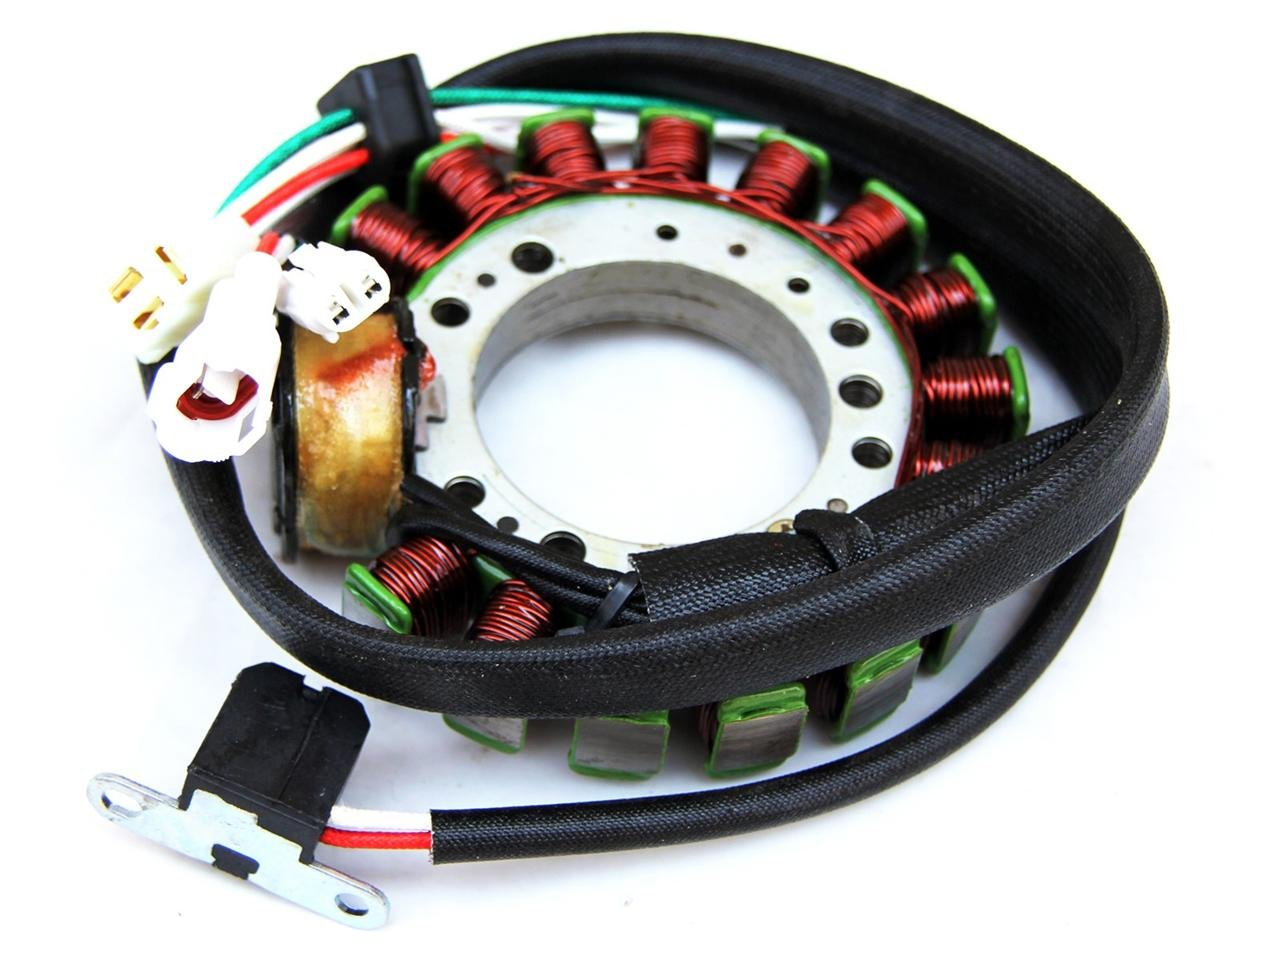 2SF Stator Yamaha ATV Big Bear YFM350 95-98 Kodiak 400 Warrior 350 Magneto IS13 by PCC MOTOR